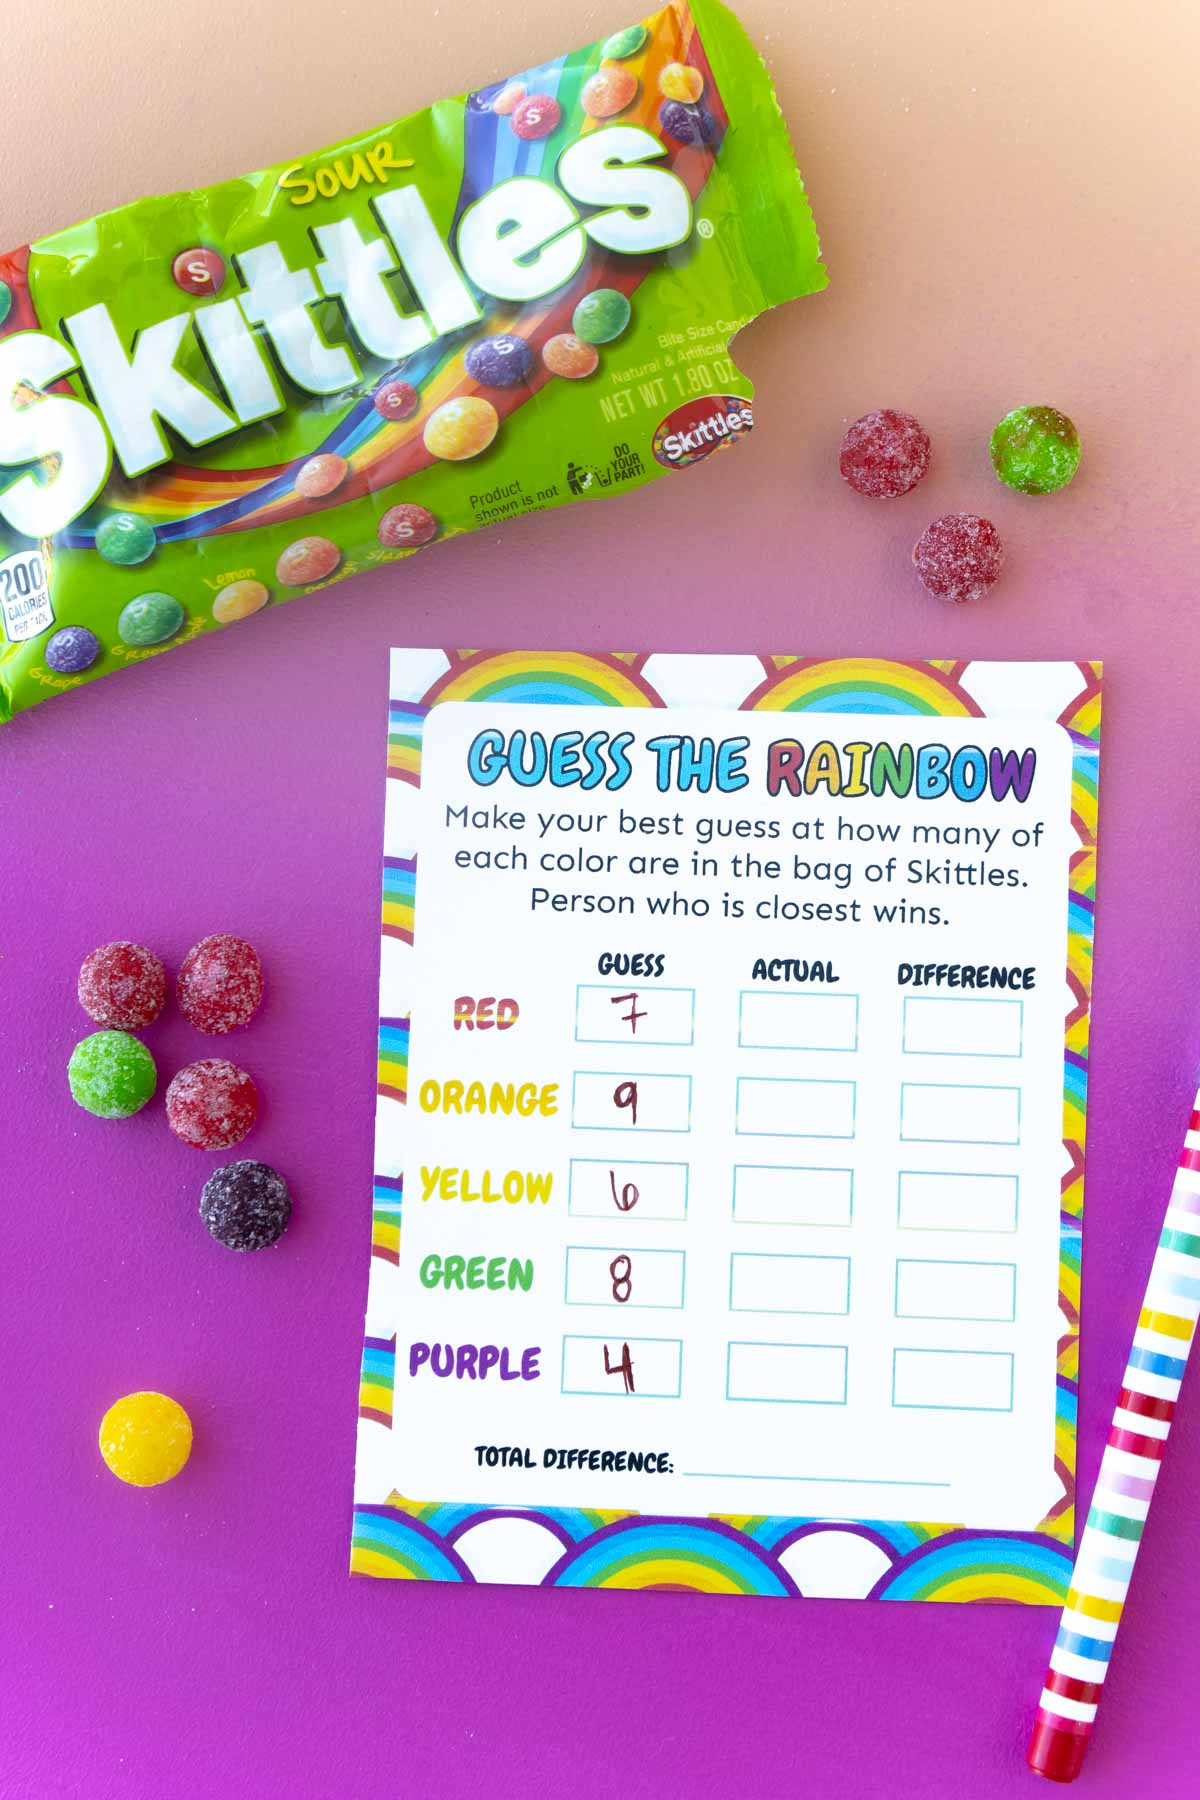 Guess the rainbow card with Skittles sorted around